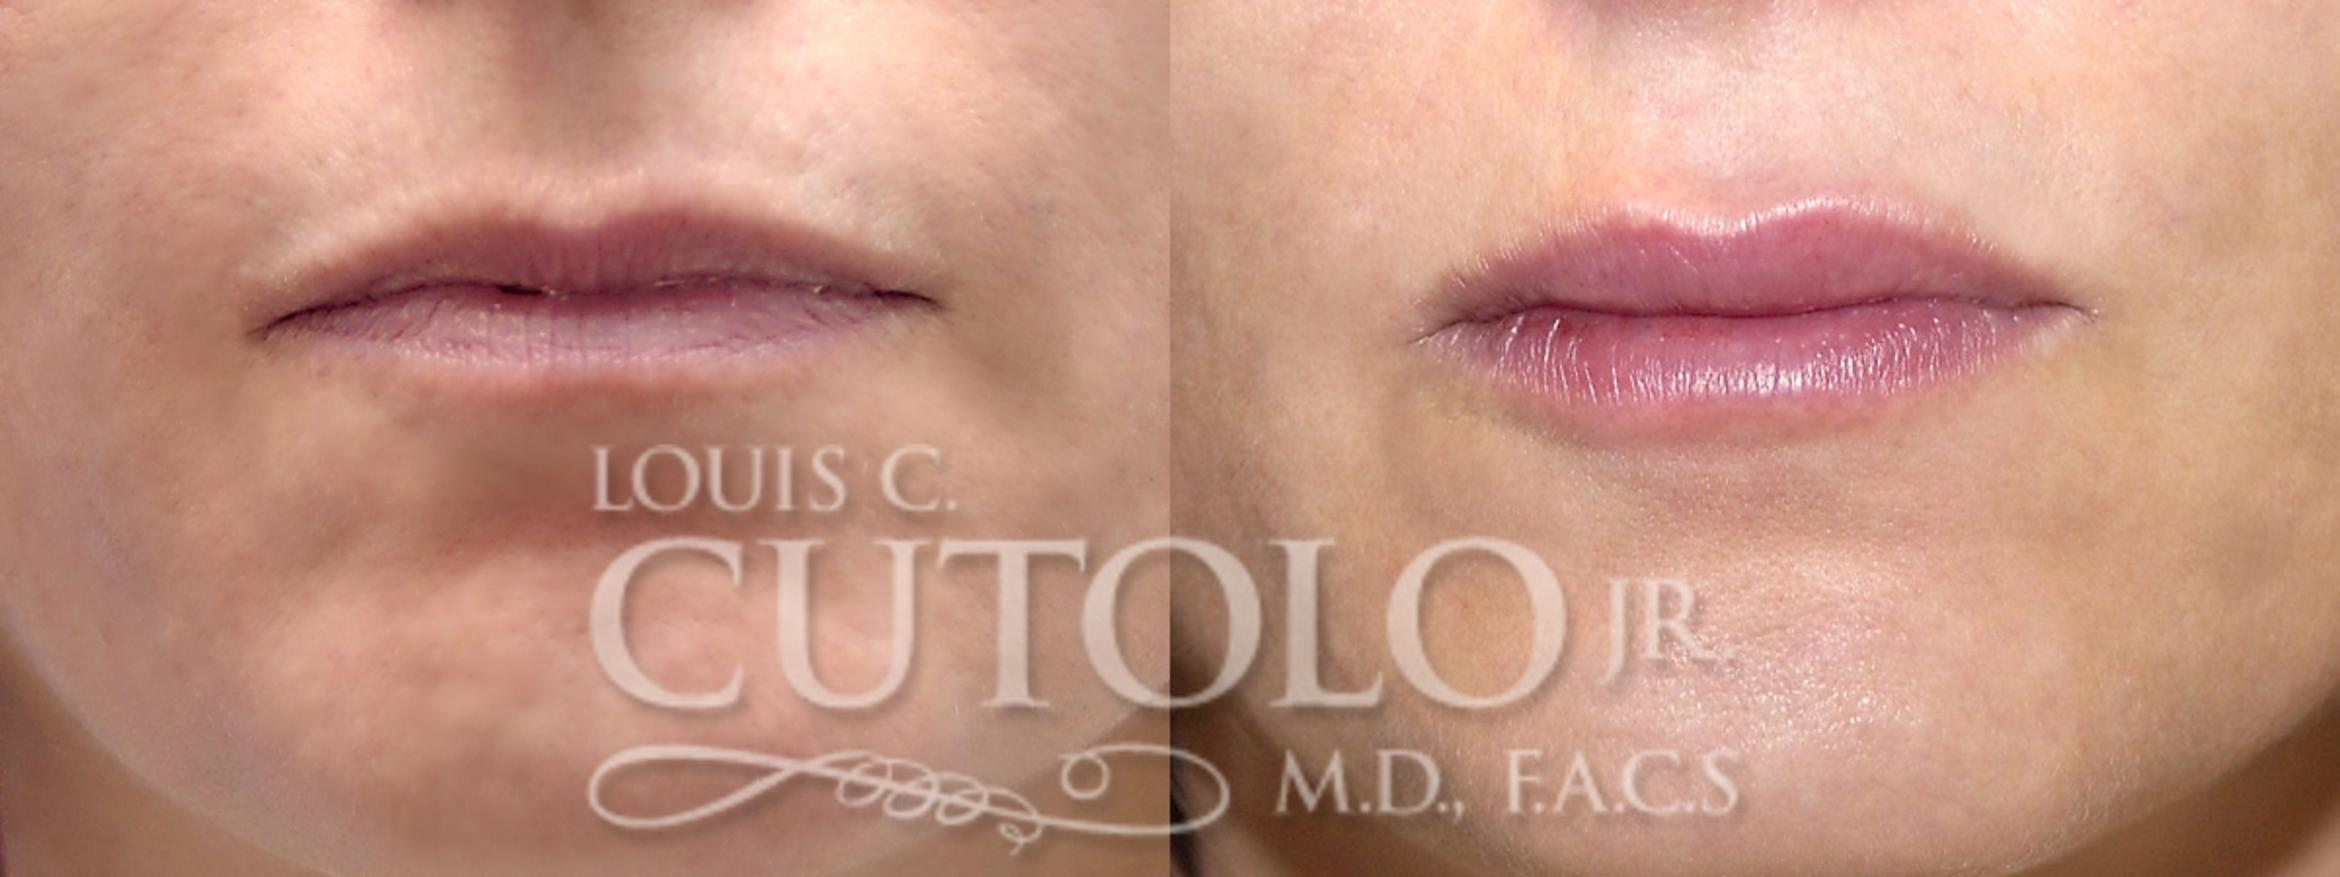 Dermal Fillers Before & After Photo | Staten Island, NY | Louis C. Cotolo, Jr., M.D., F.A.C.S.